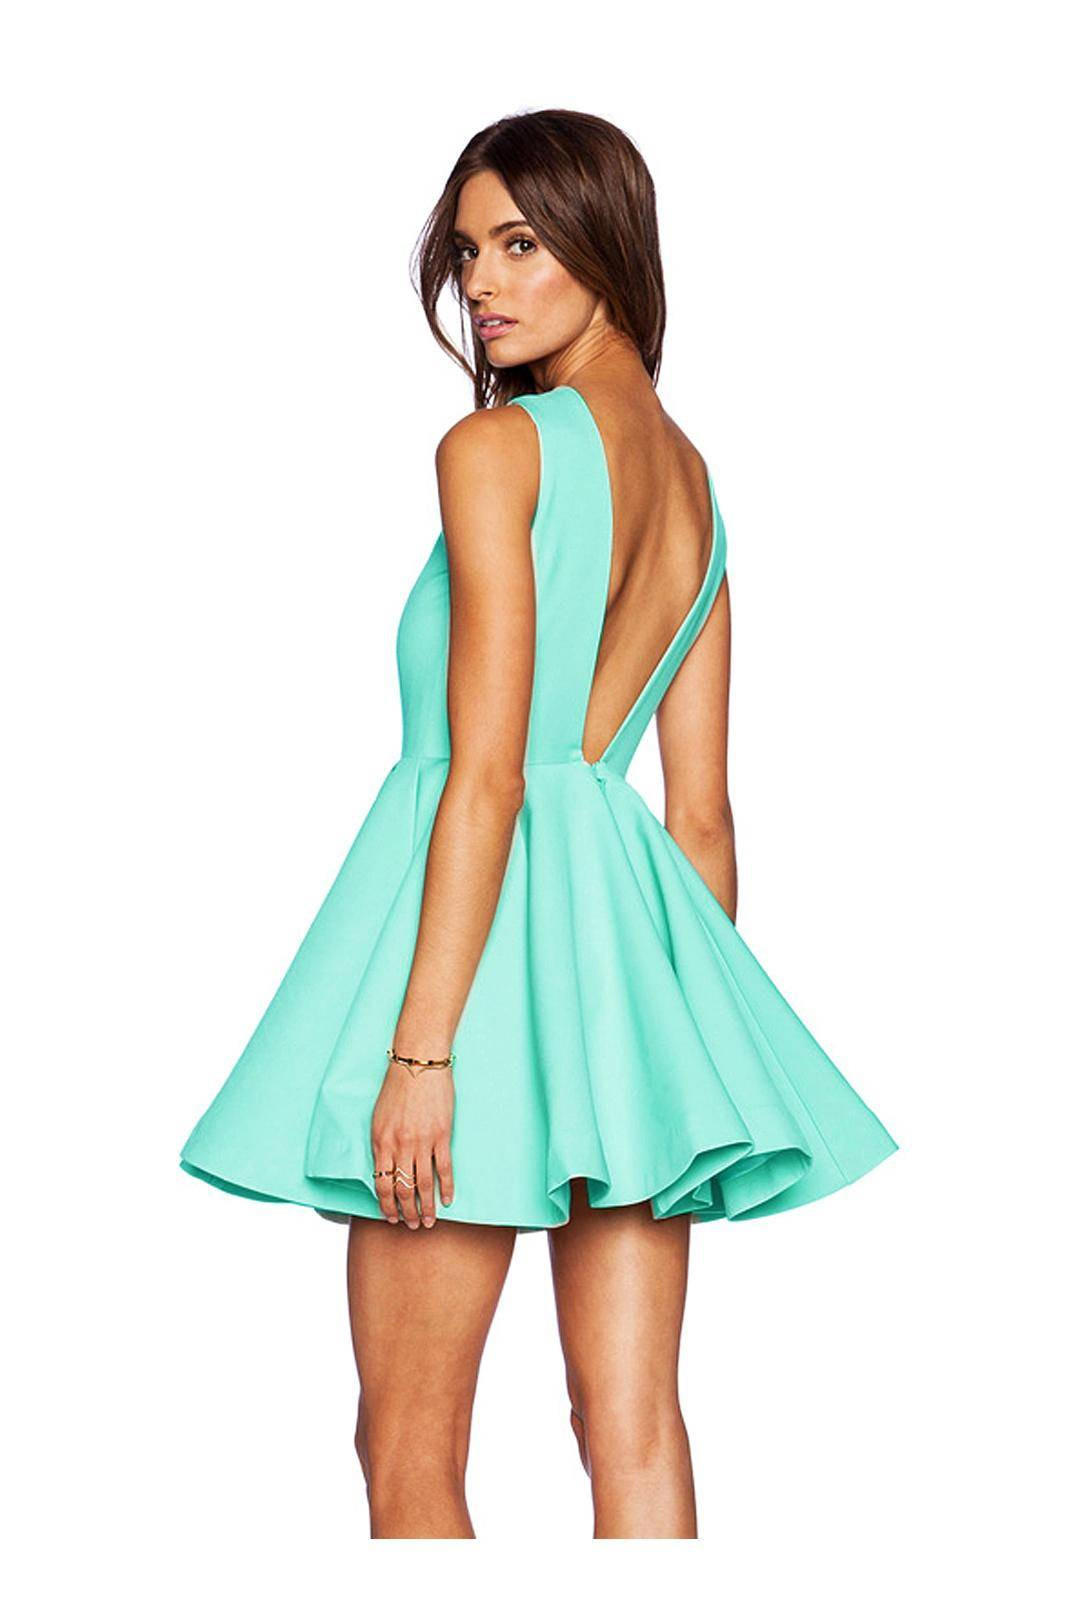 825433a728db V Backless Ball Gown Skater Dress from Young   Free Clothing